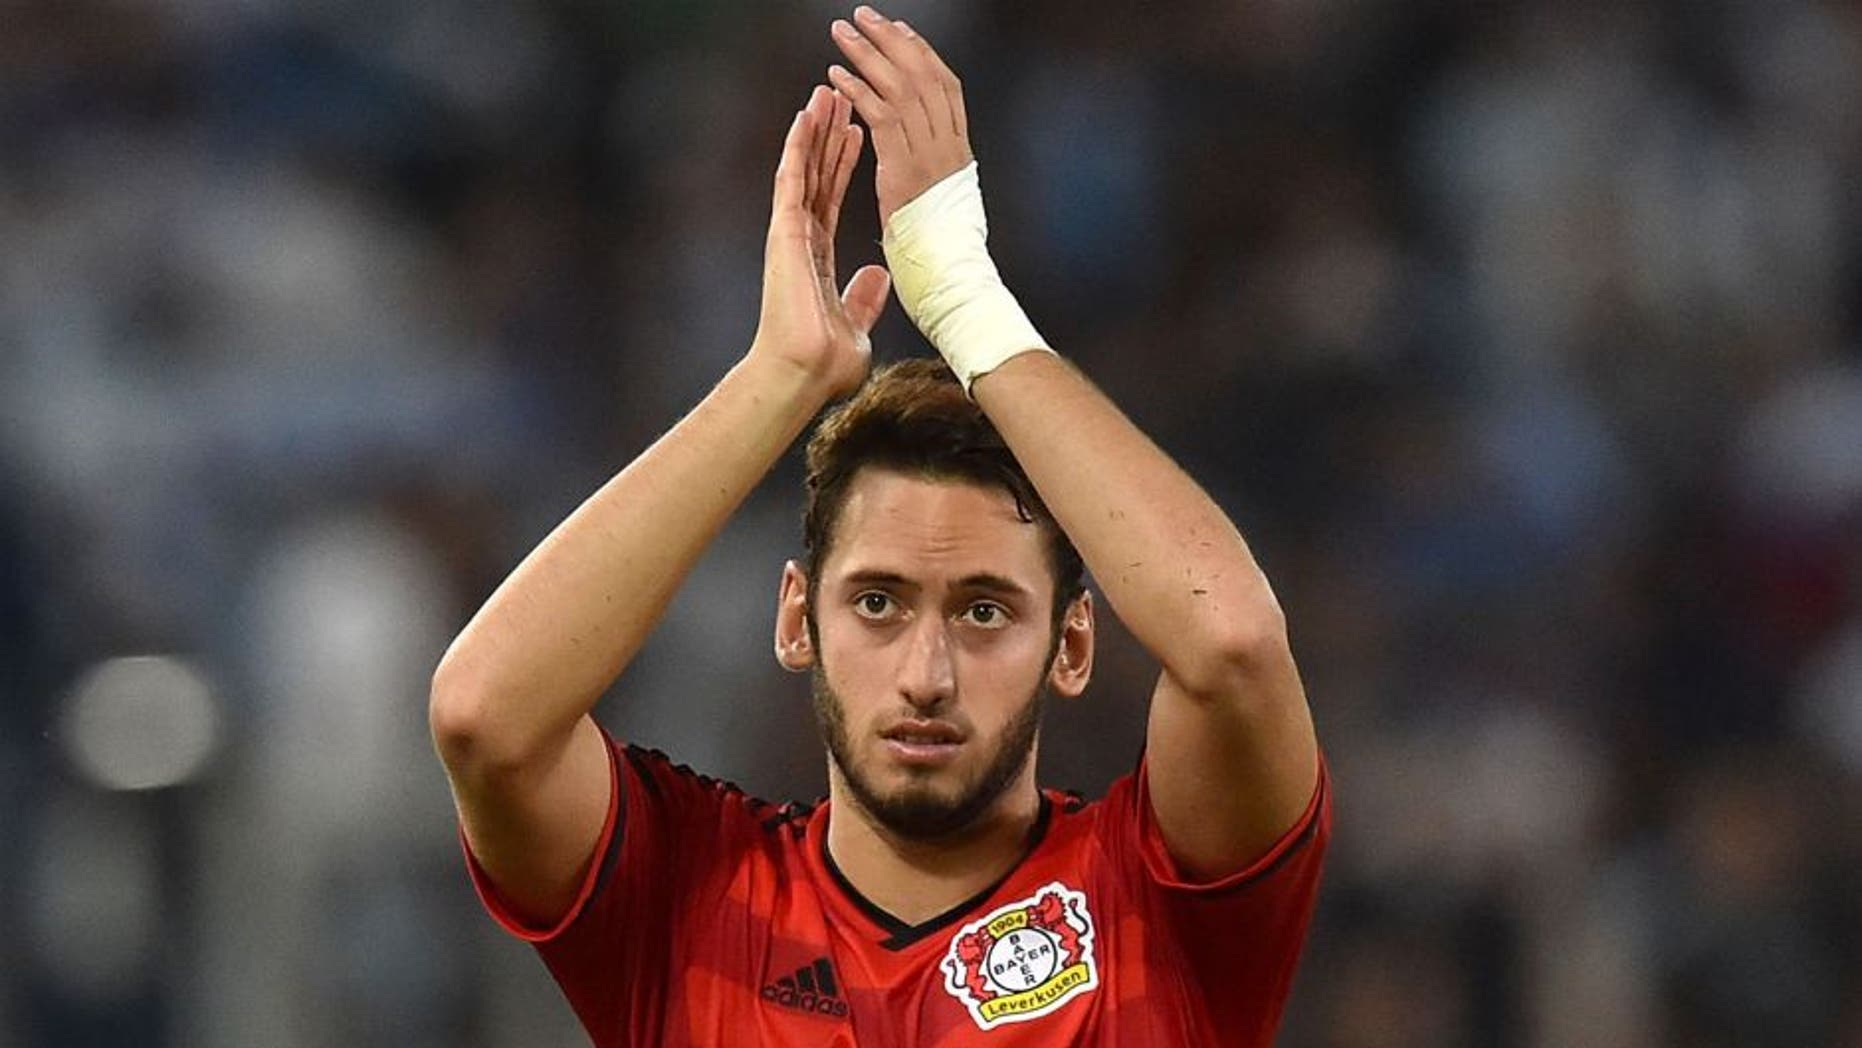 ROME, ITALY - AUGUST 18: Hakan Calhanoglu of Bayer Leverkusen after the UEFA Champions League qualifying round play off first leg match between SS Lazio and Bayer Leverkusen at Olimpico Stadium on August 18, 2015 in Rome, Italy. (Photo by Giuseppe Bellini/Getty Images)